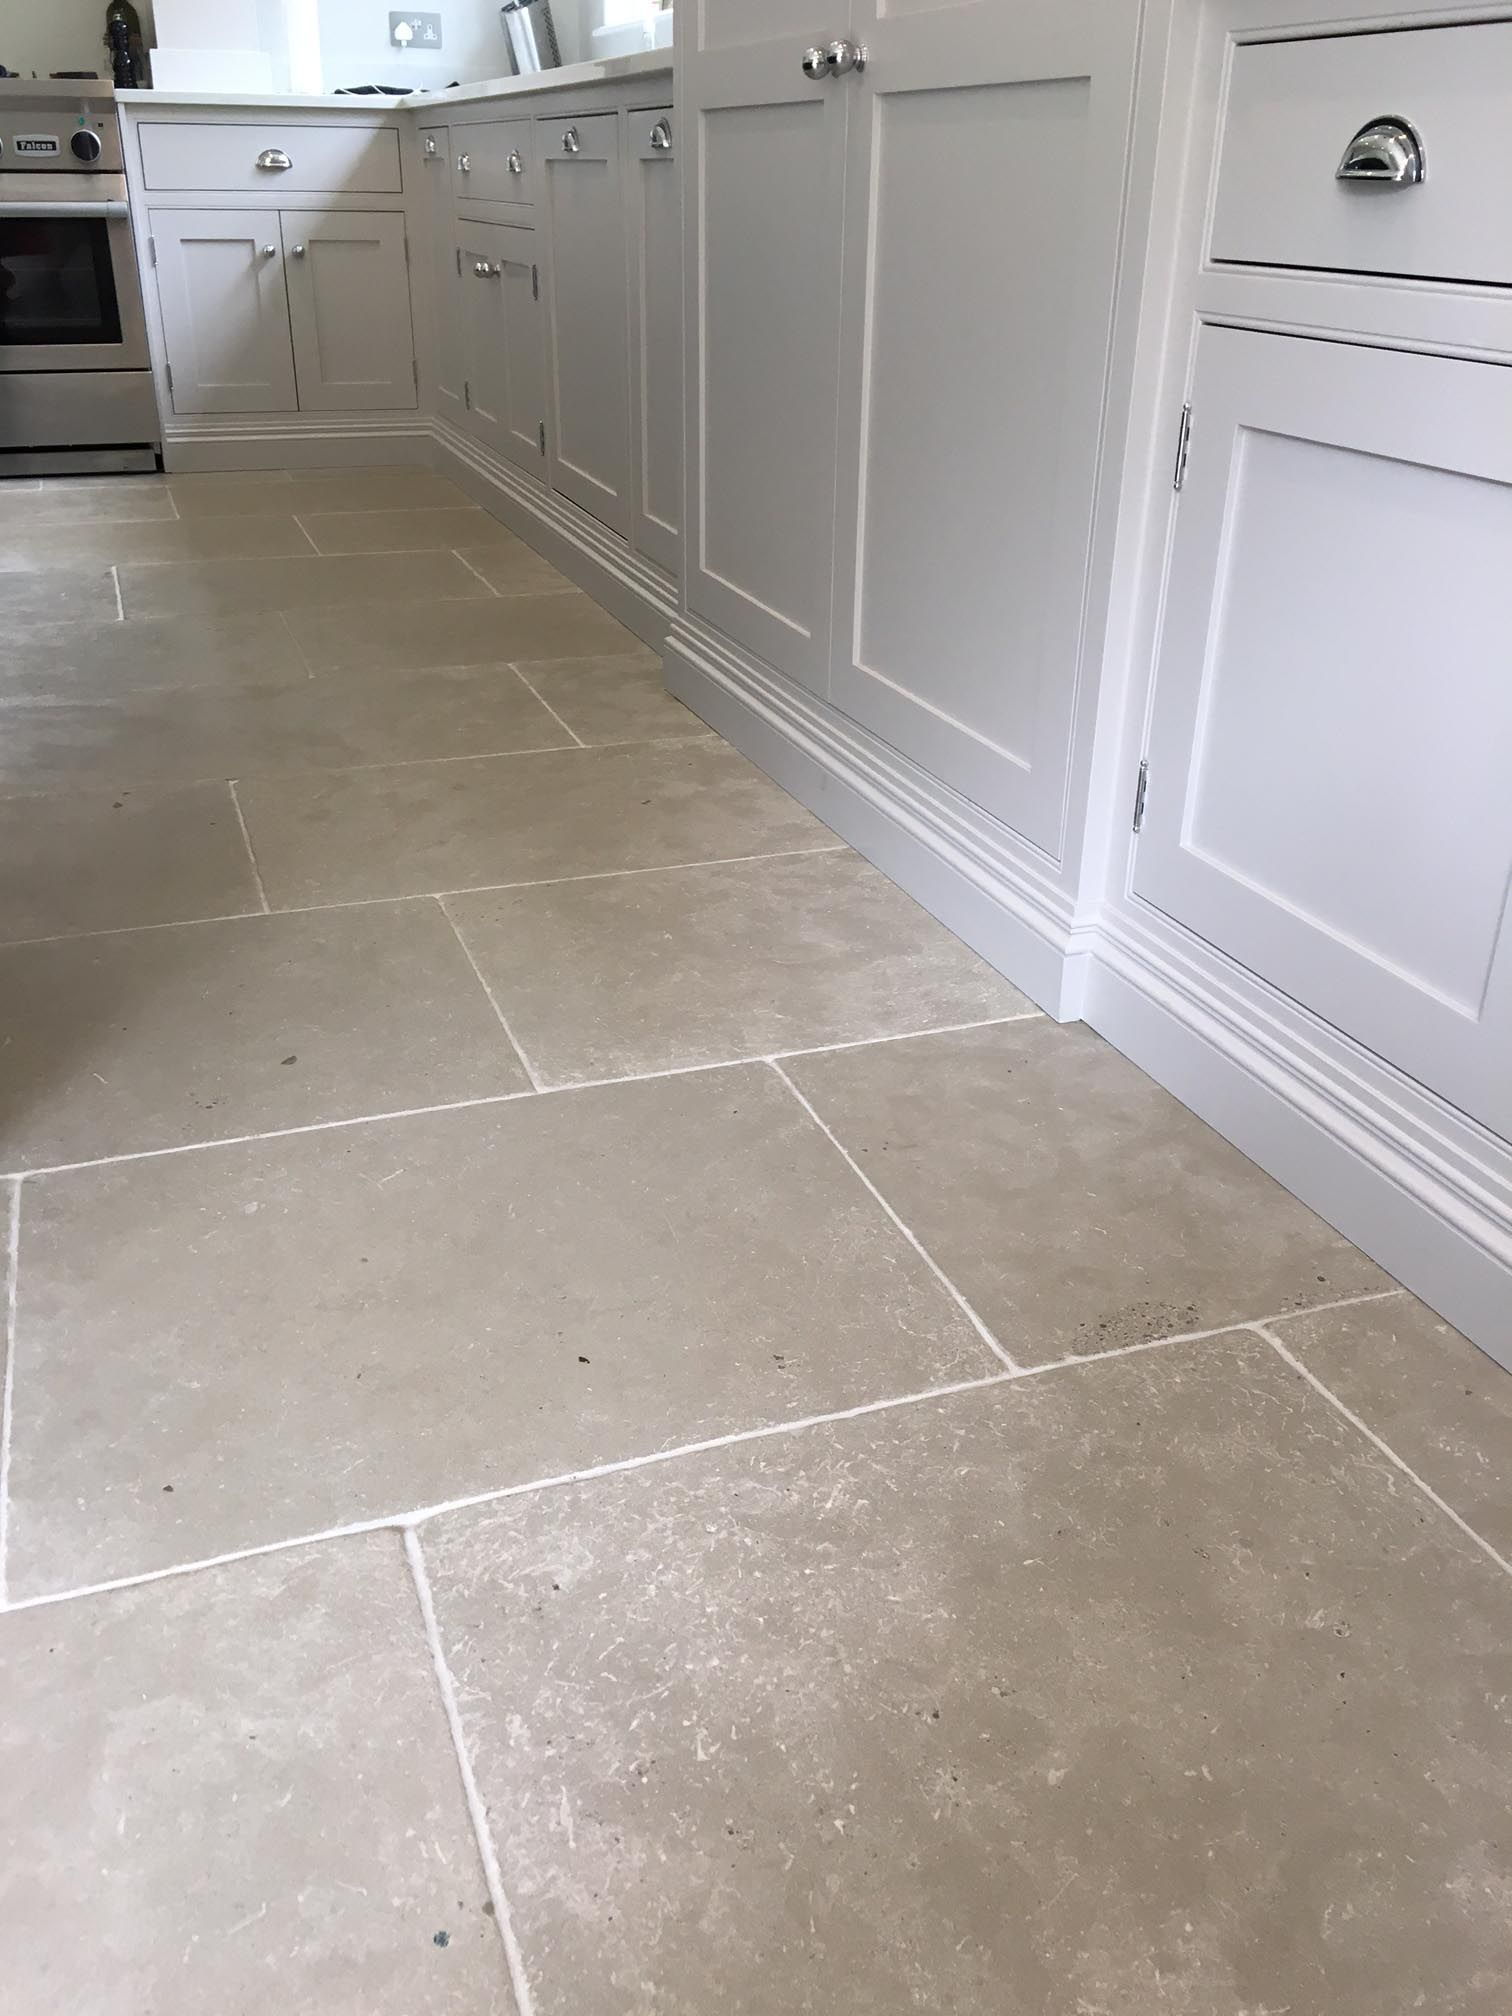 paris grey limestone tiles for a durable kitchen floor. light grey